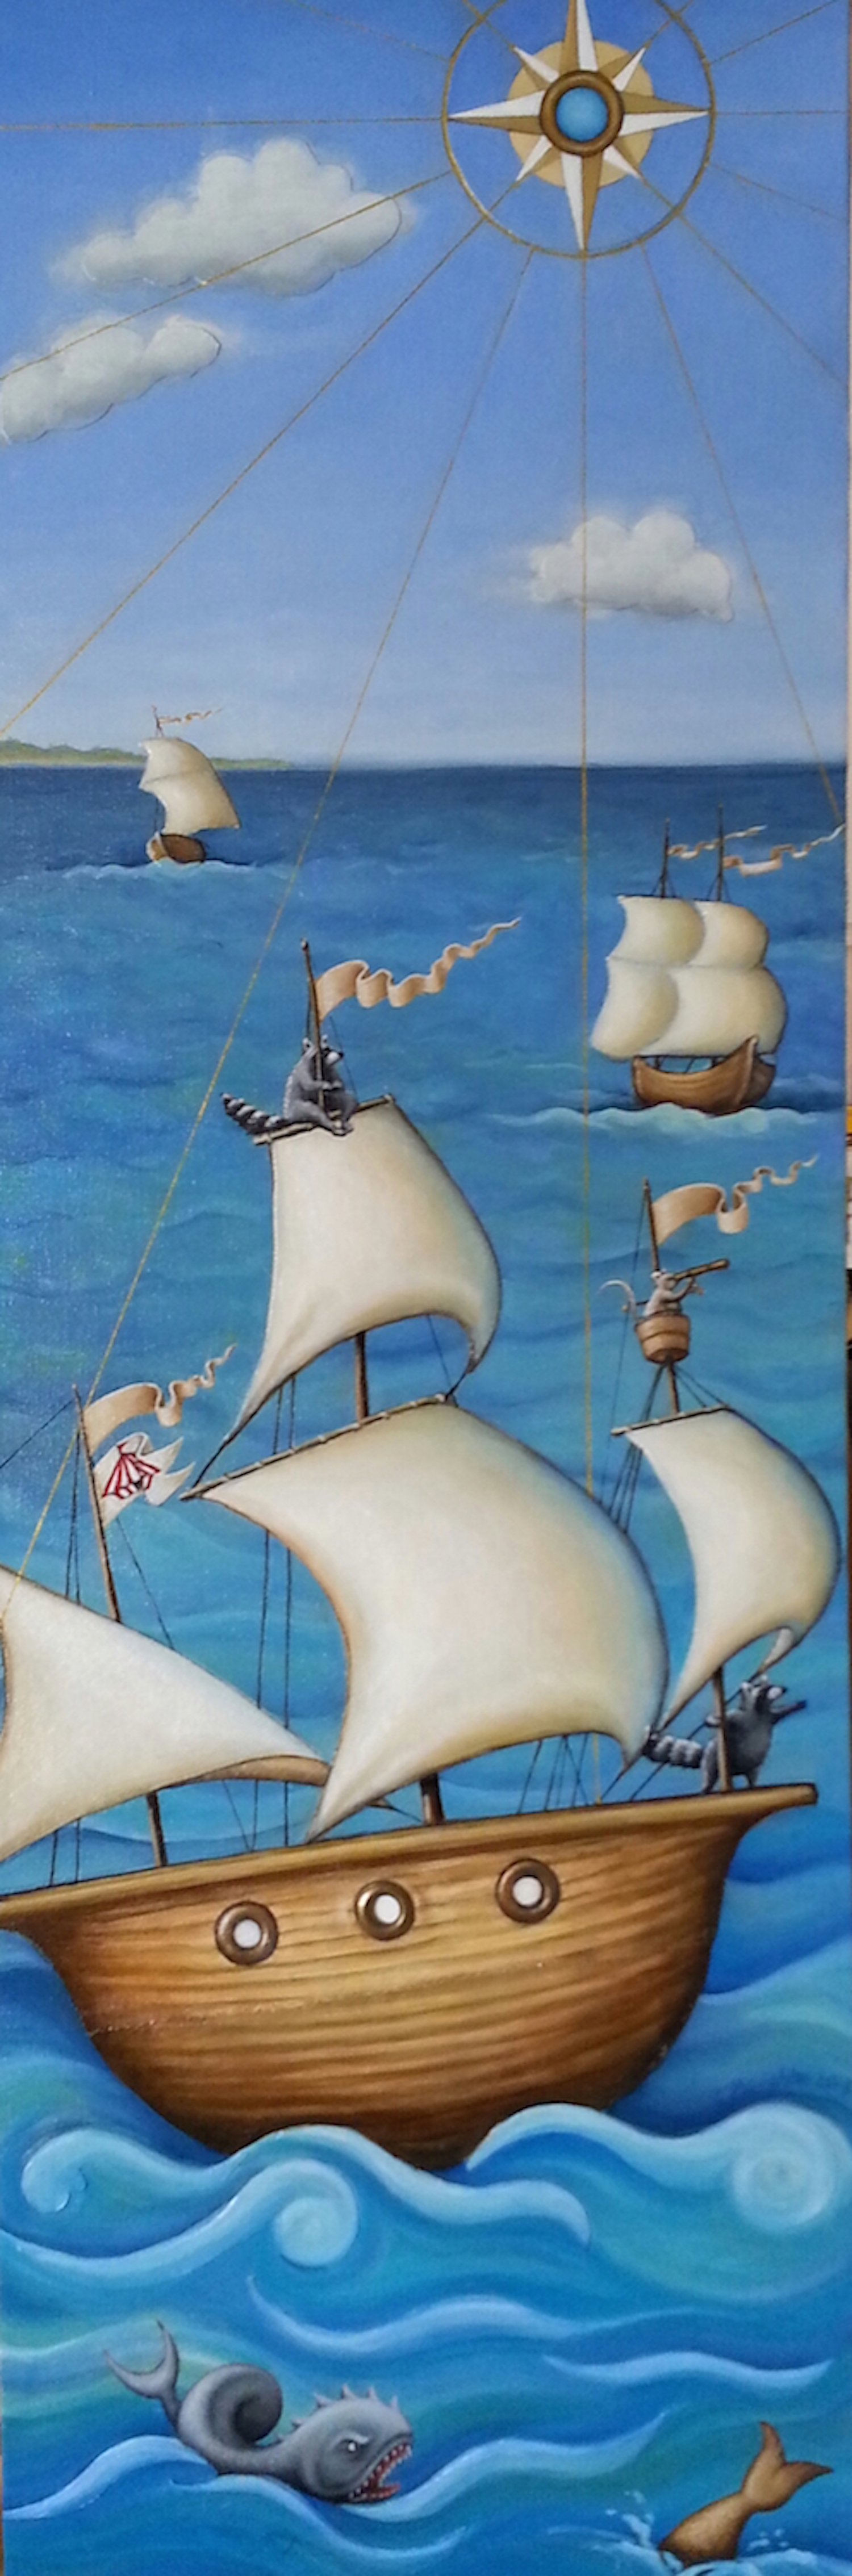 """The Tent Sails Oil & collaged canvas on canvas 32"""" x 12"""""""